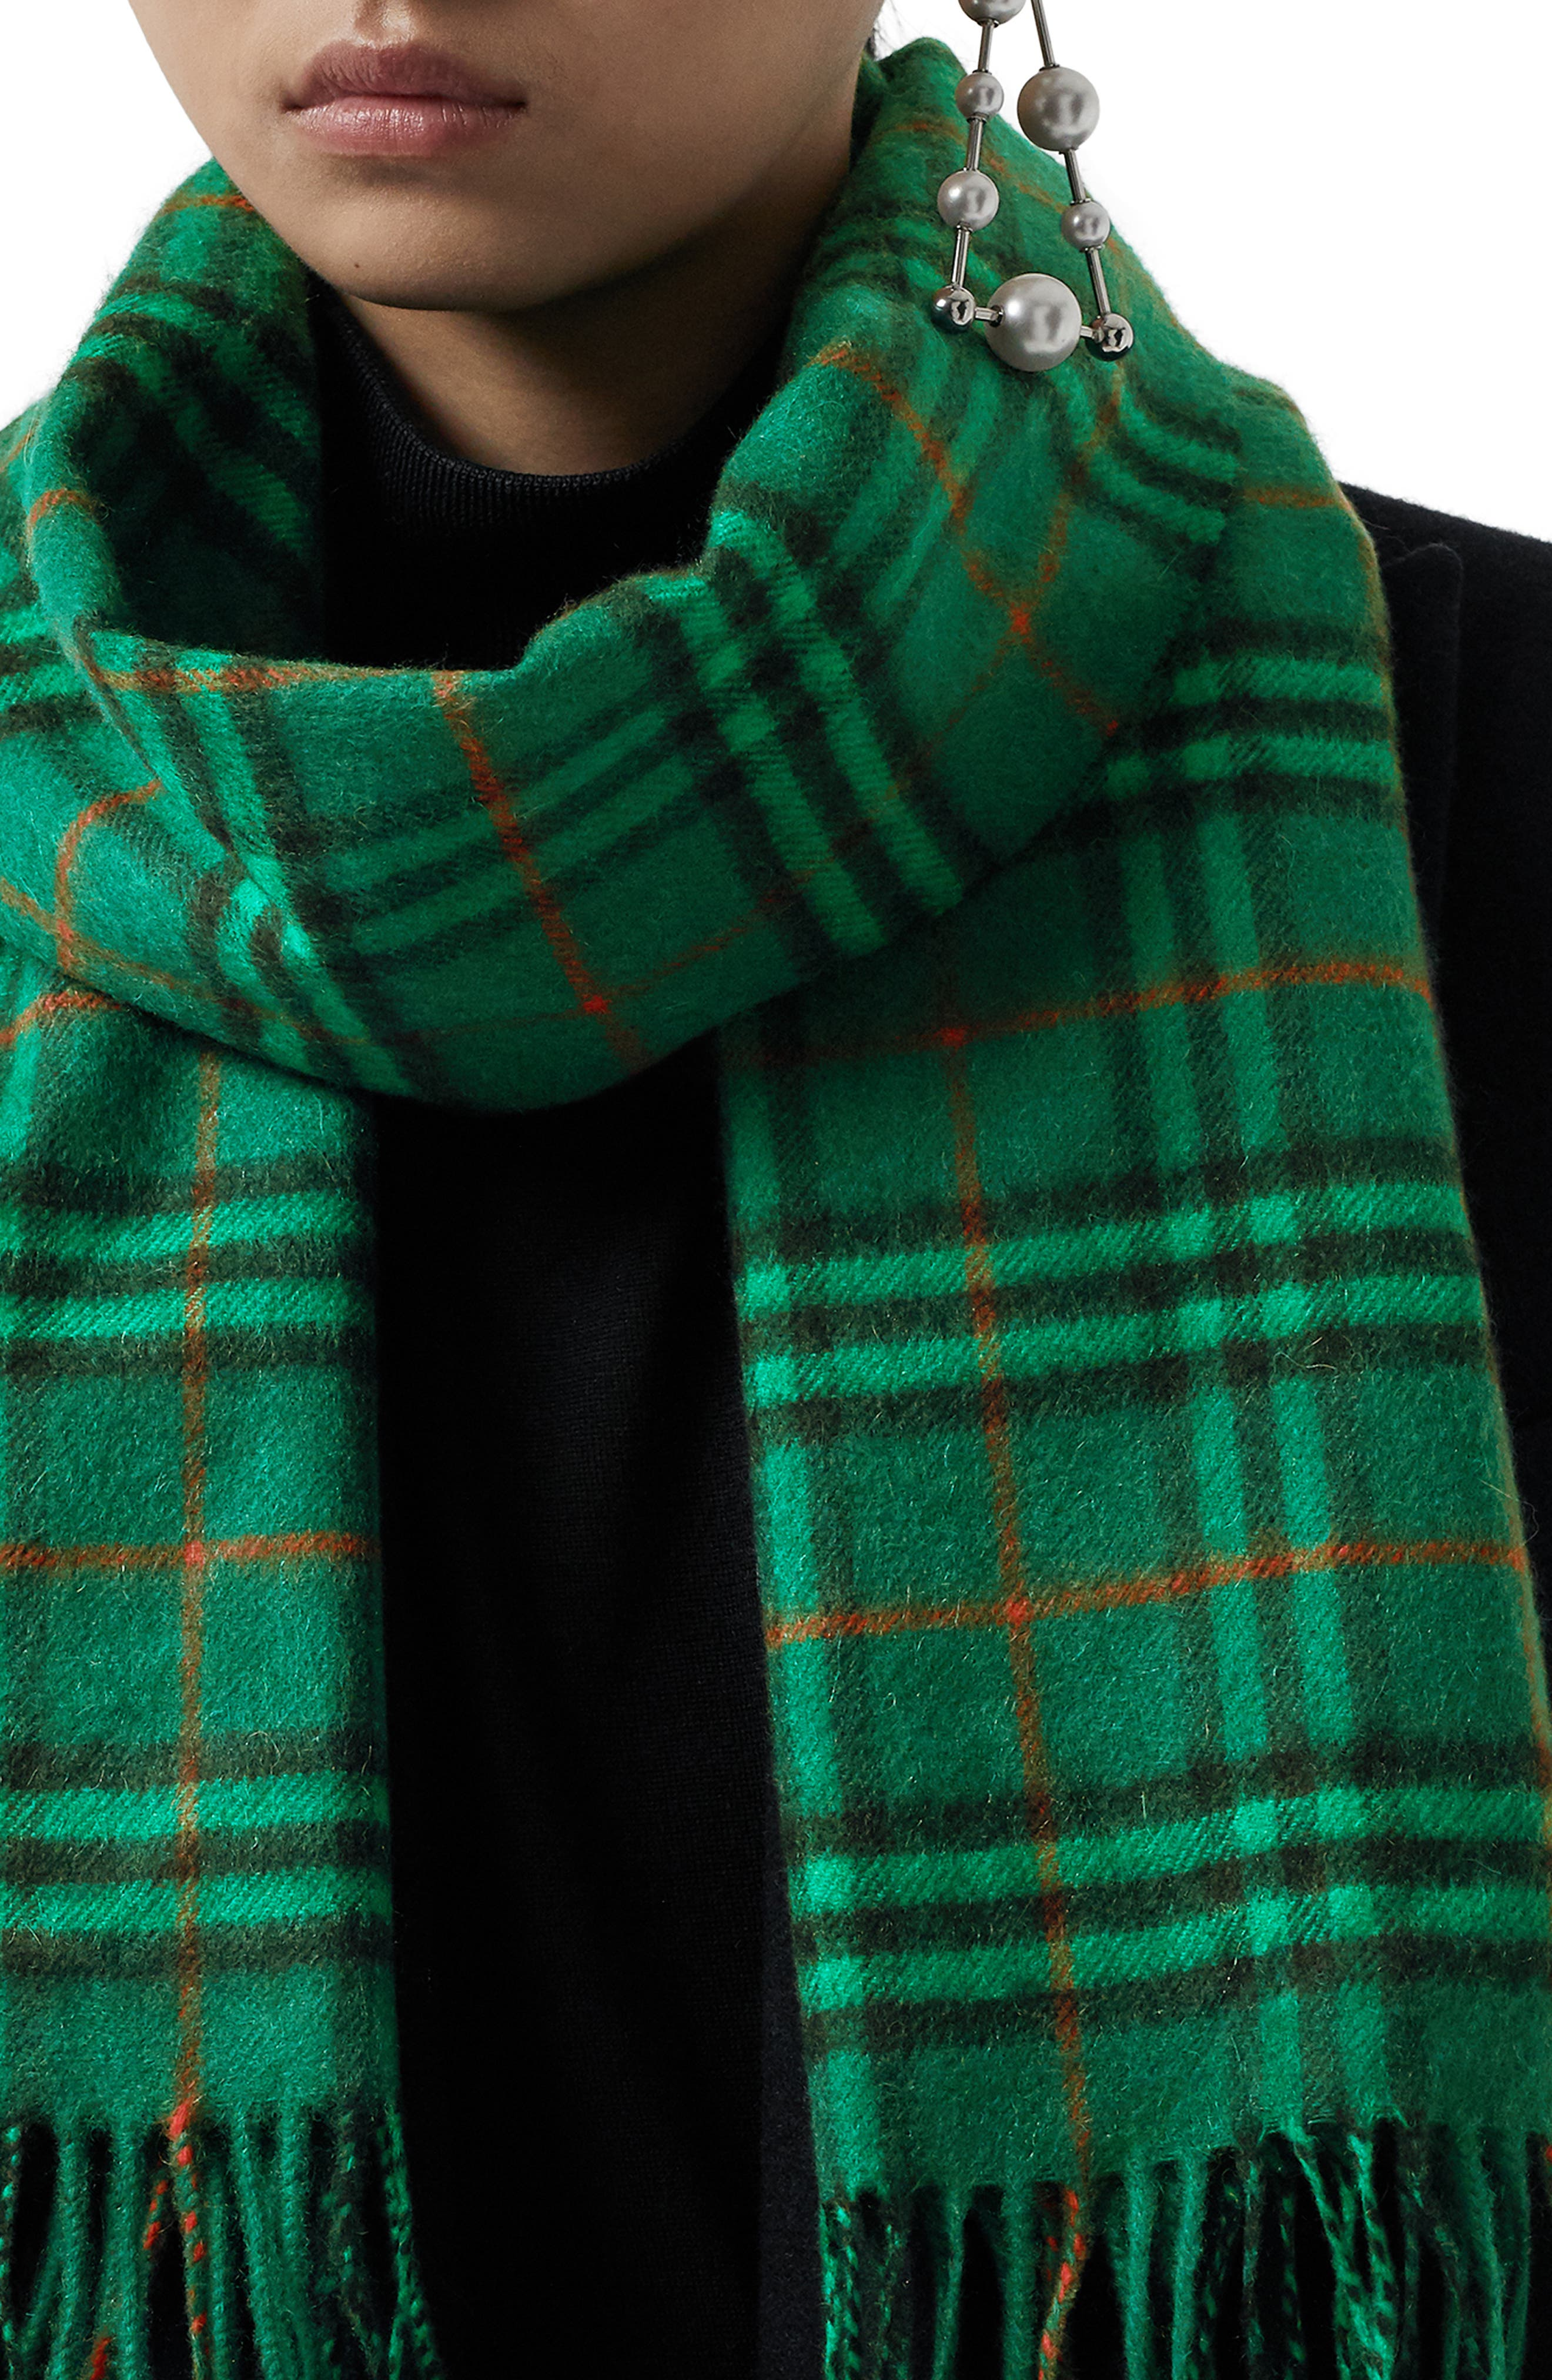 BURBERRY,                             Vintage Check Cashmere Scarf,                             Alternate thumbnail 5, color,                             VIRIDIAN GREEN